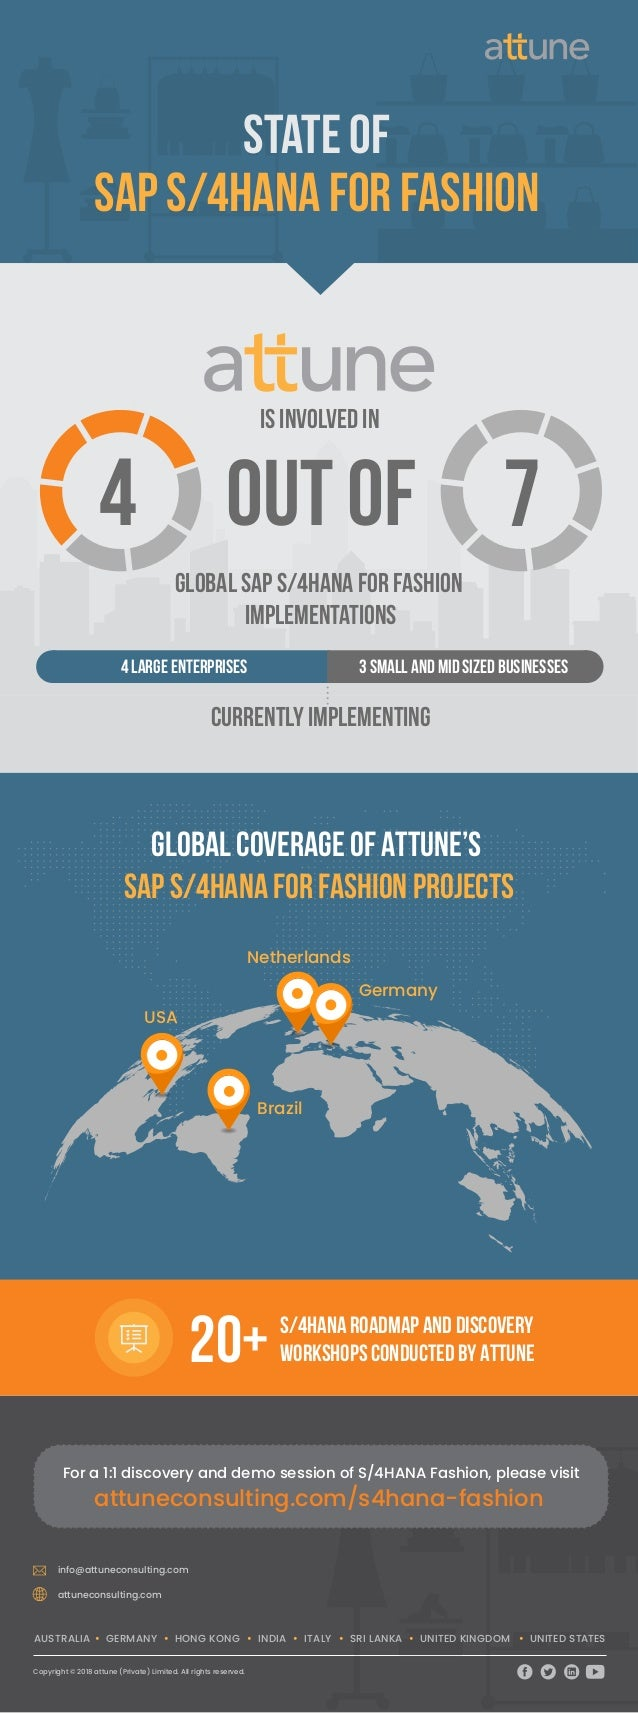 Germany Netherlands USA Brazil S/4HANA Roadmap and Discovery workshops conducted BY ATTUNE20+ Global Coverage of ATTUNE'S ...